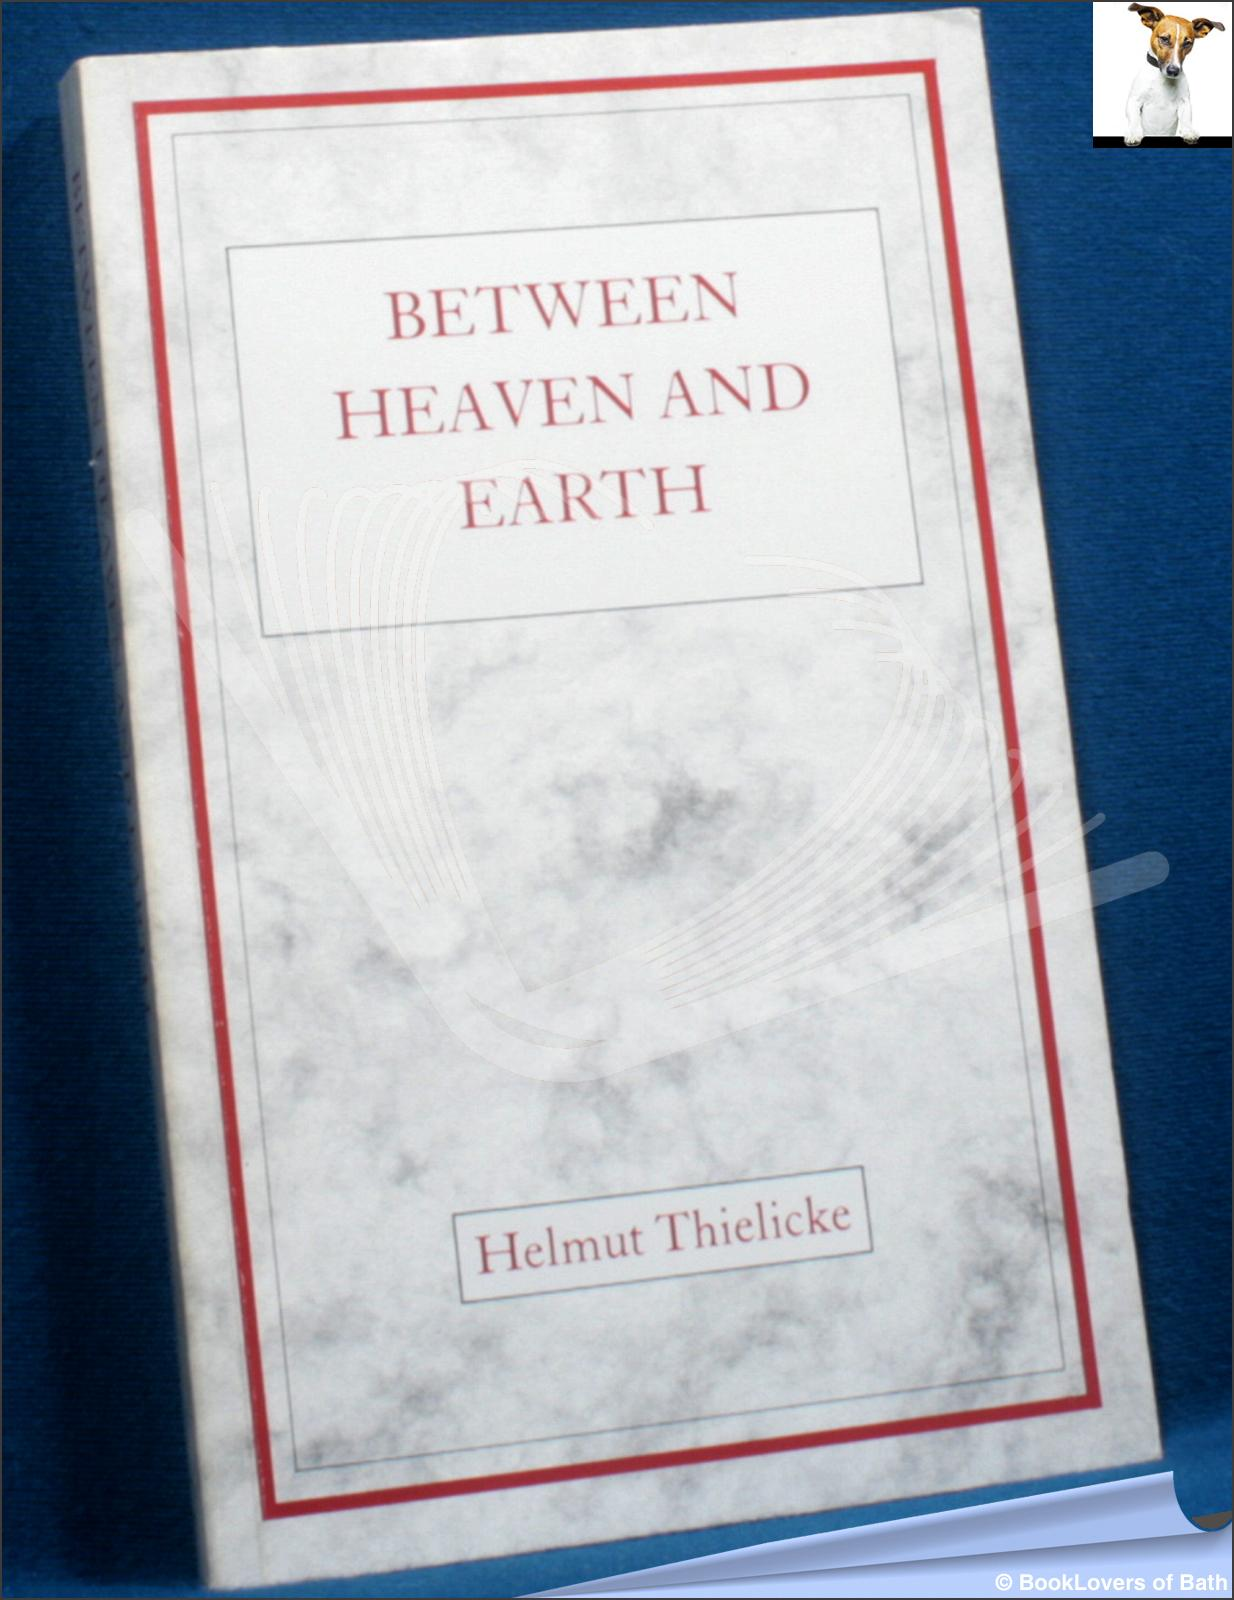 Between Heaven and Earth - Helmut Thielicke